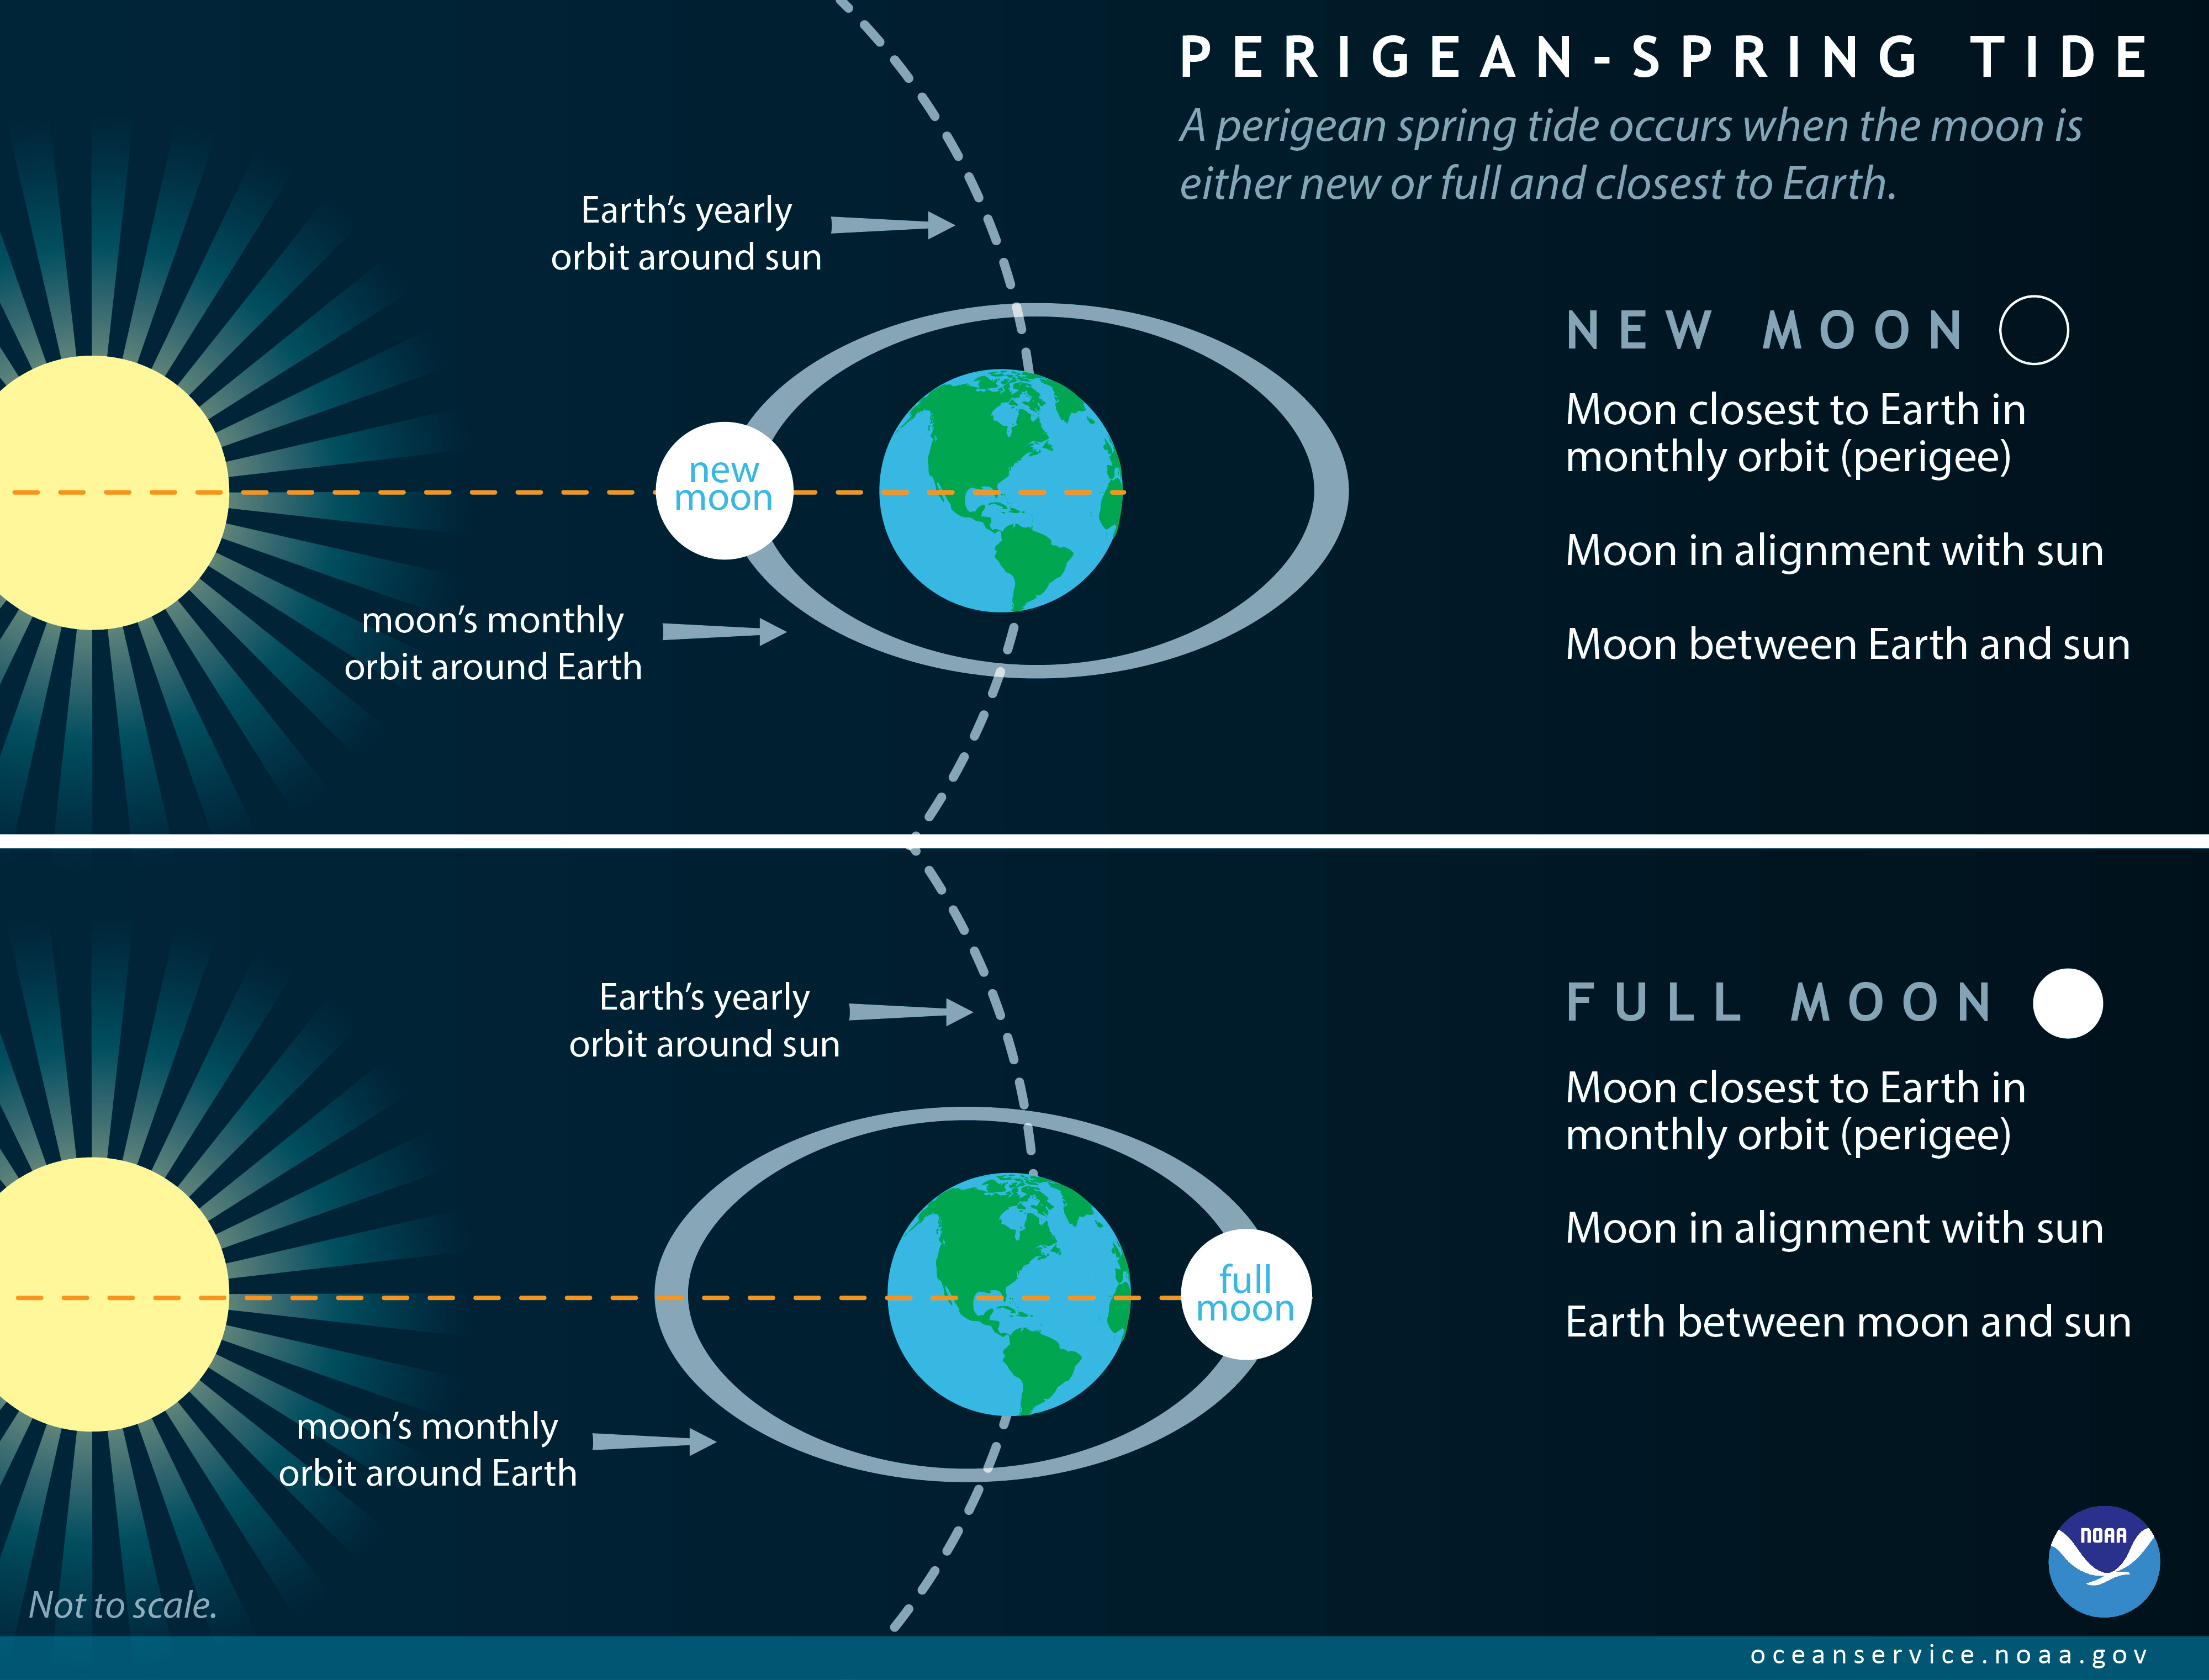 What Is A Perigean Spring Tide